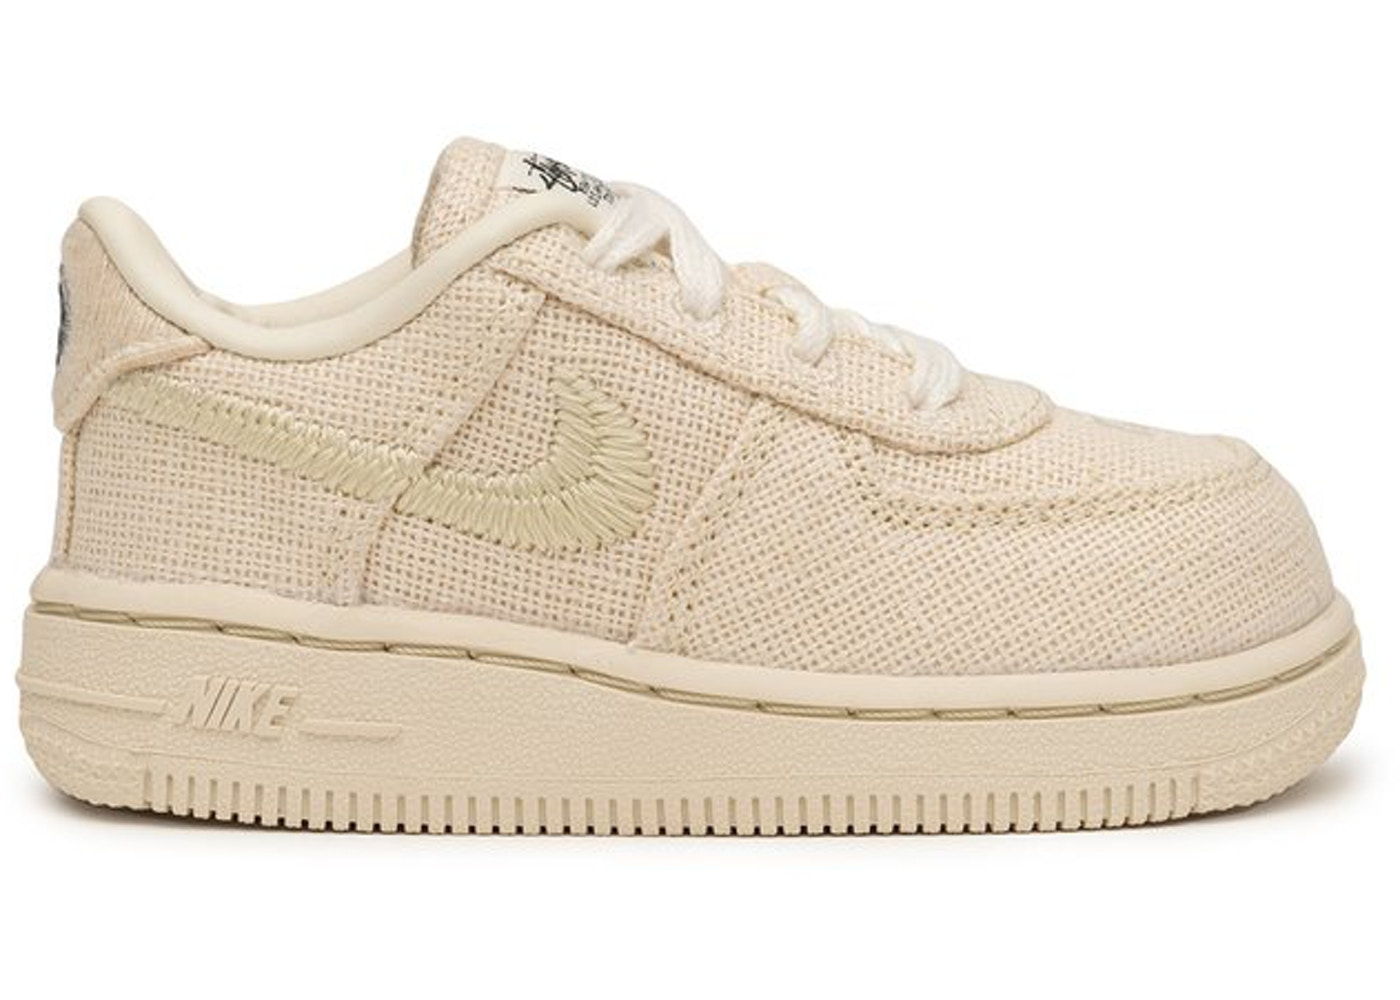 Nike Air Force 1 Low Stussy Fossil (TD)